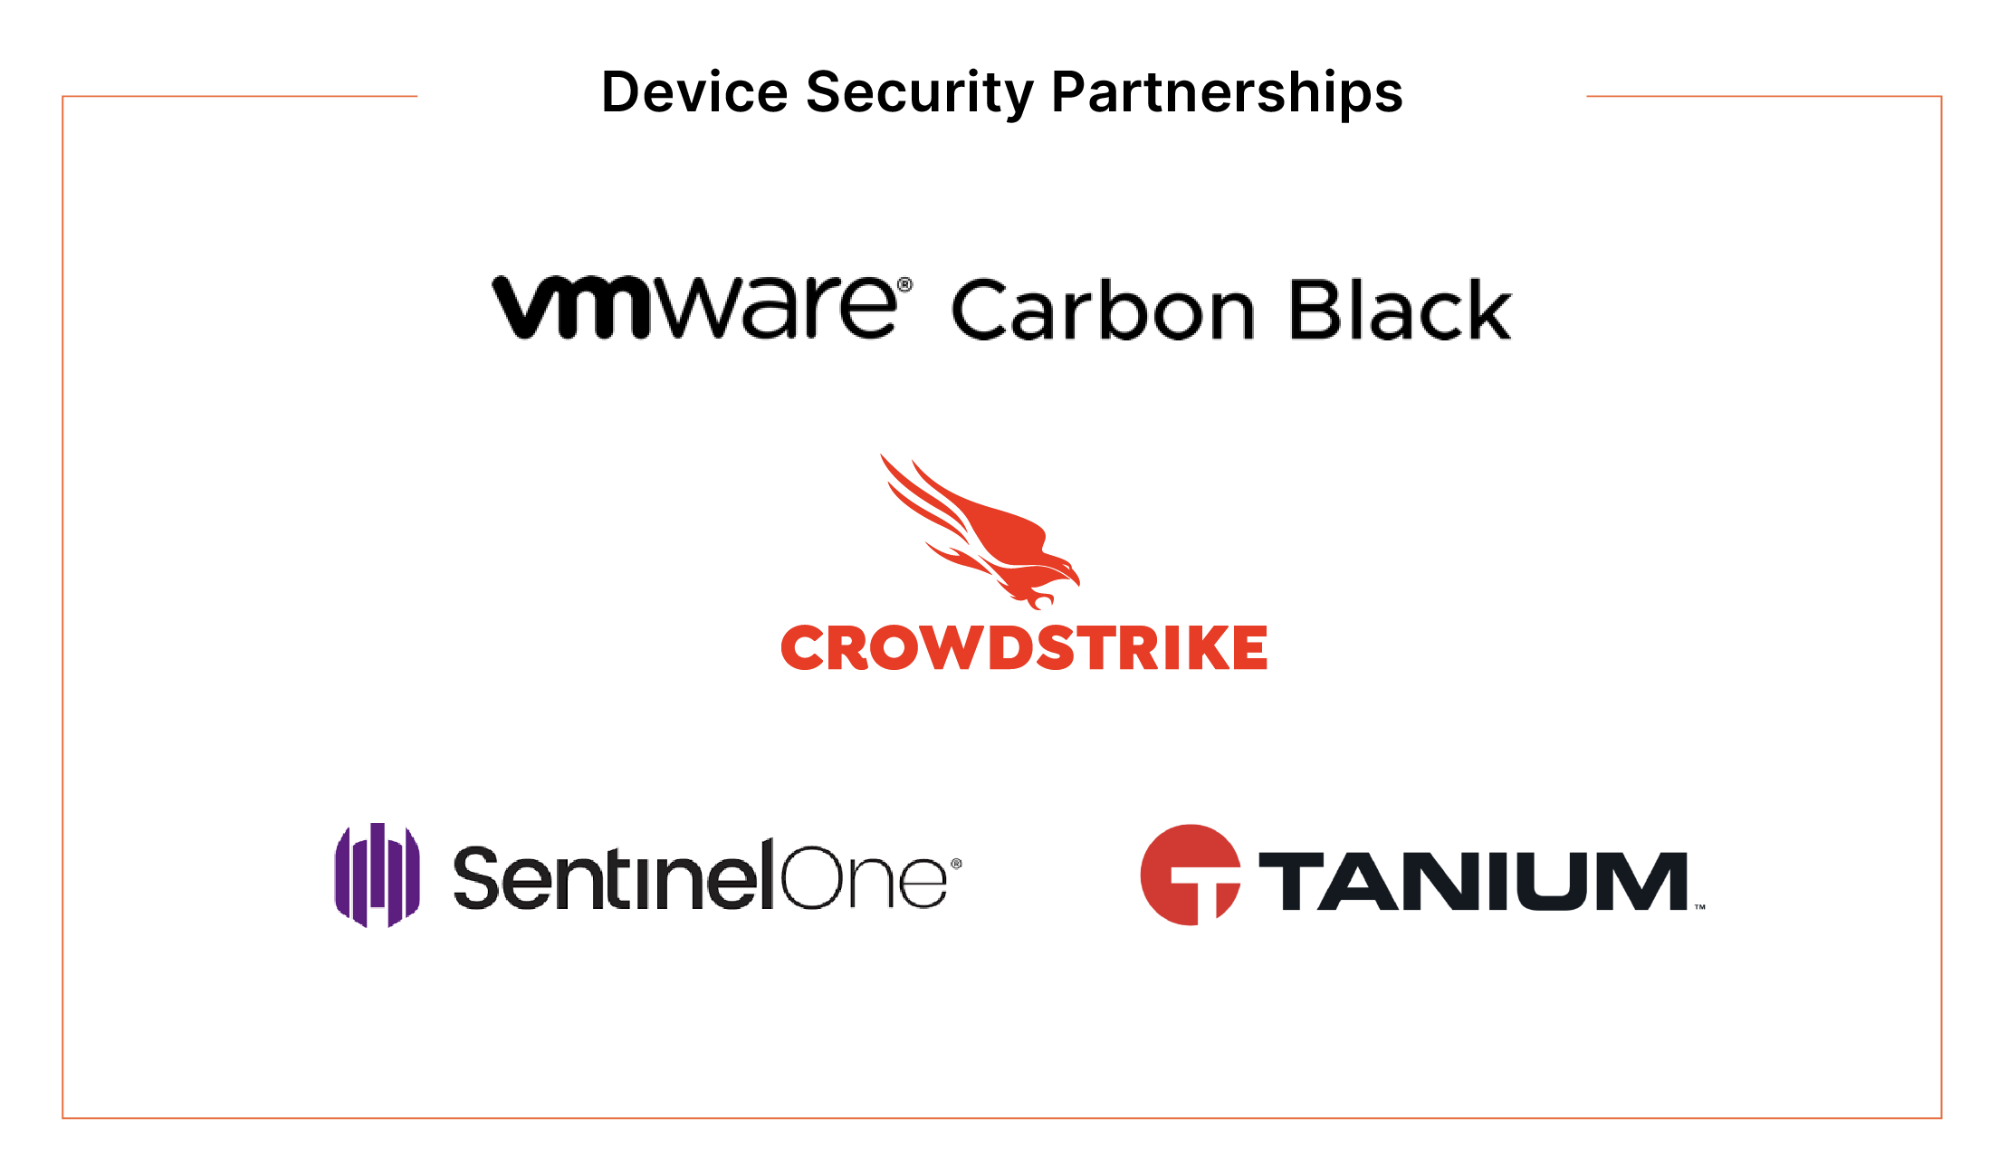 Today, we are excited to announce new integrations with CrowdStrike, SentinelOne, and VMware Carbon Black to pair with our existing Tanium integration.